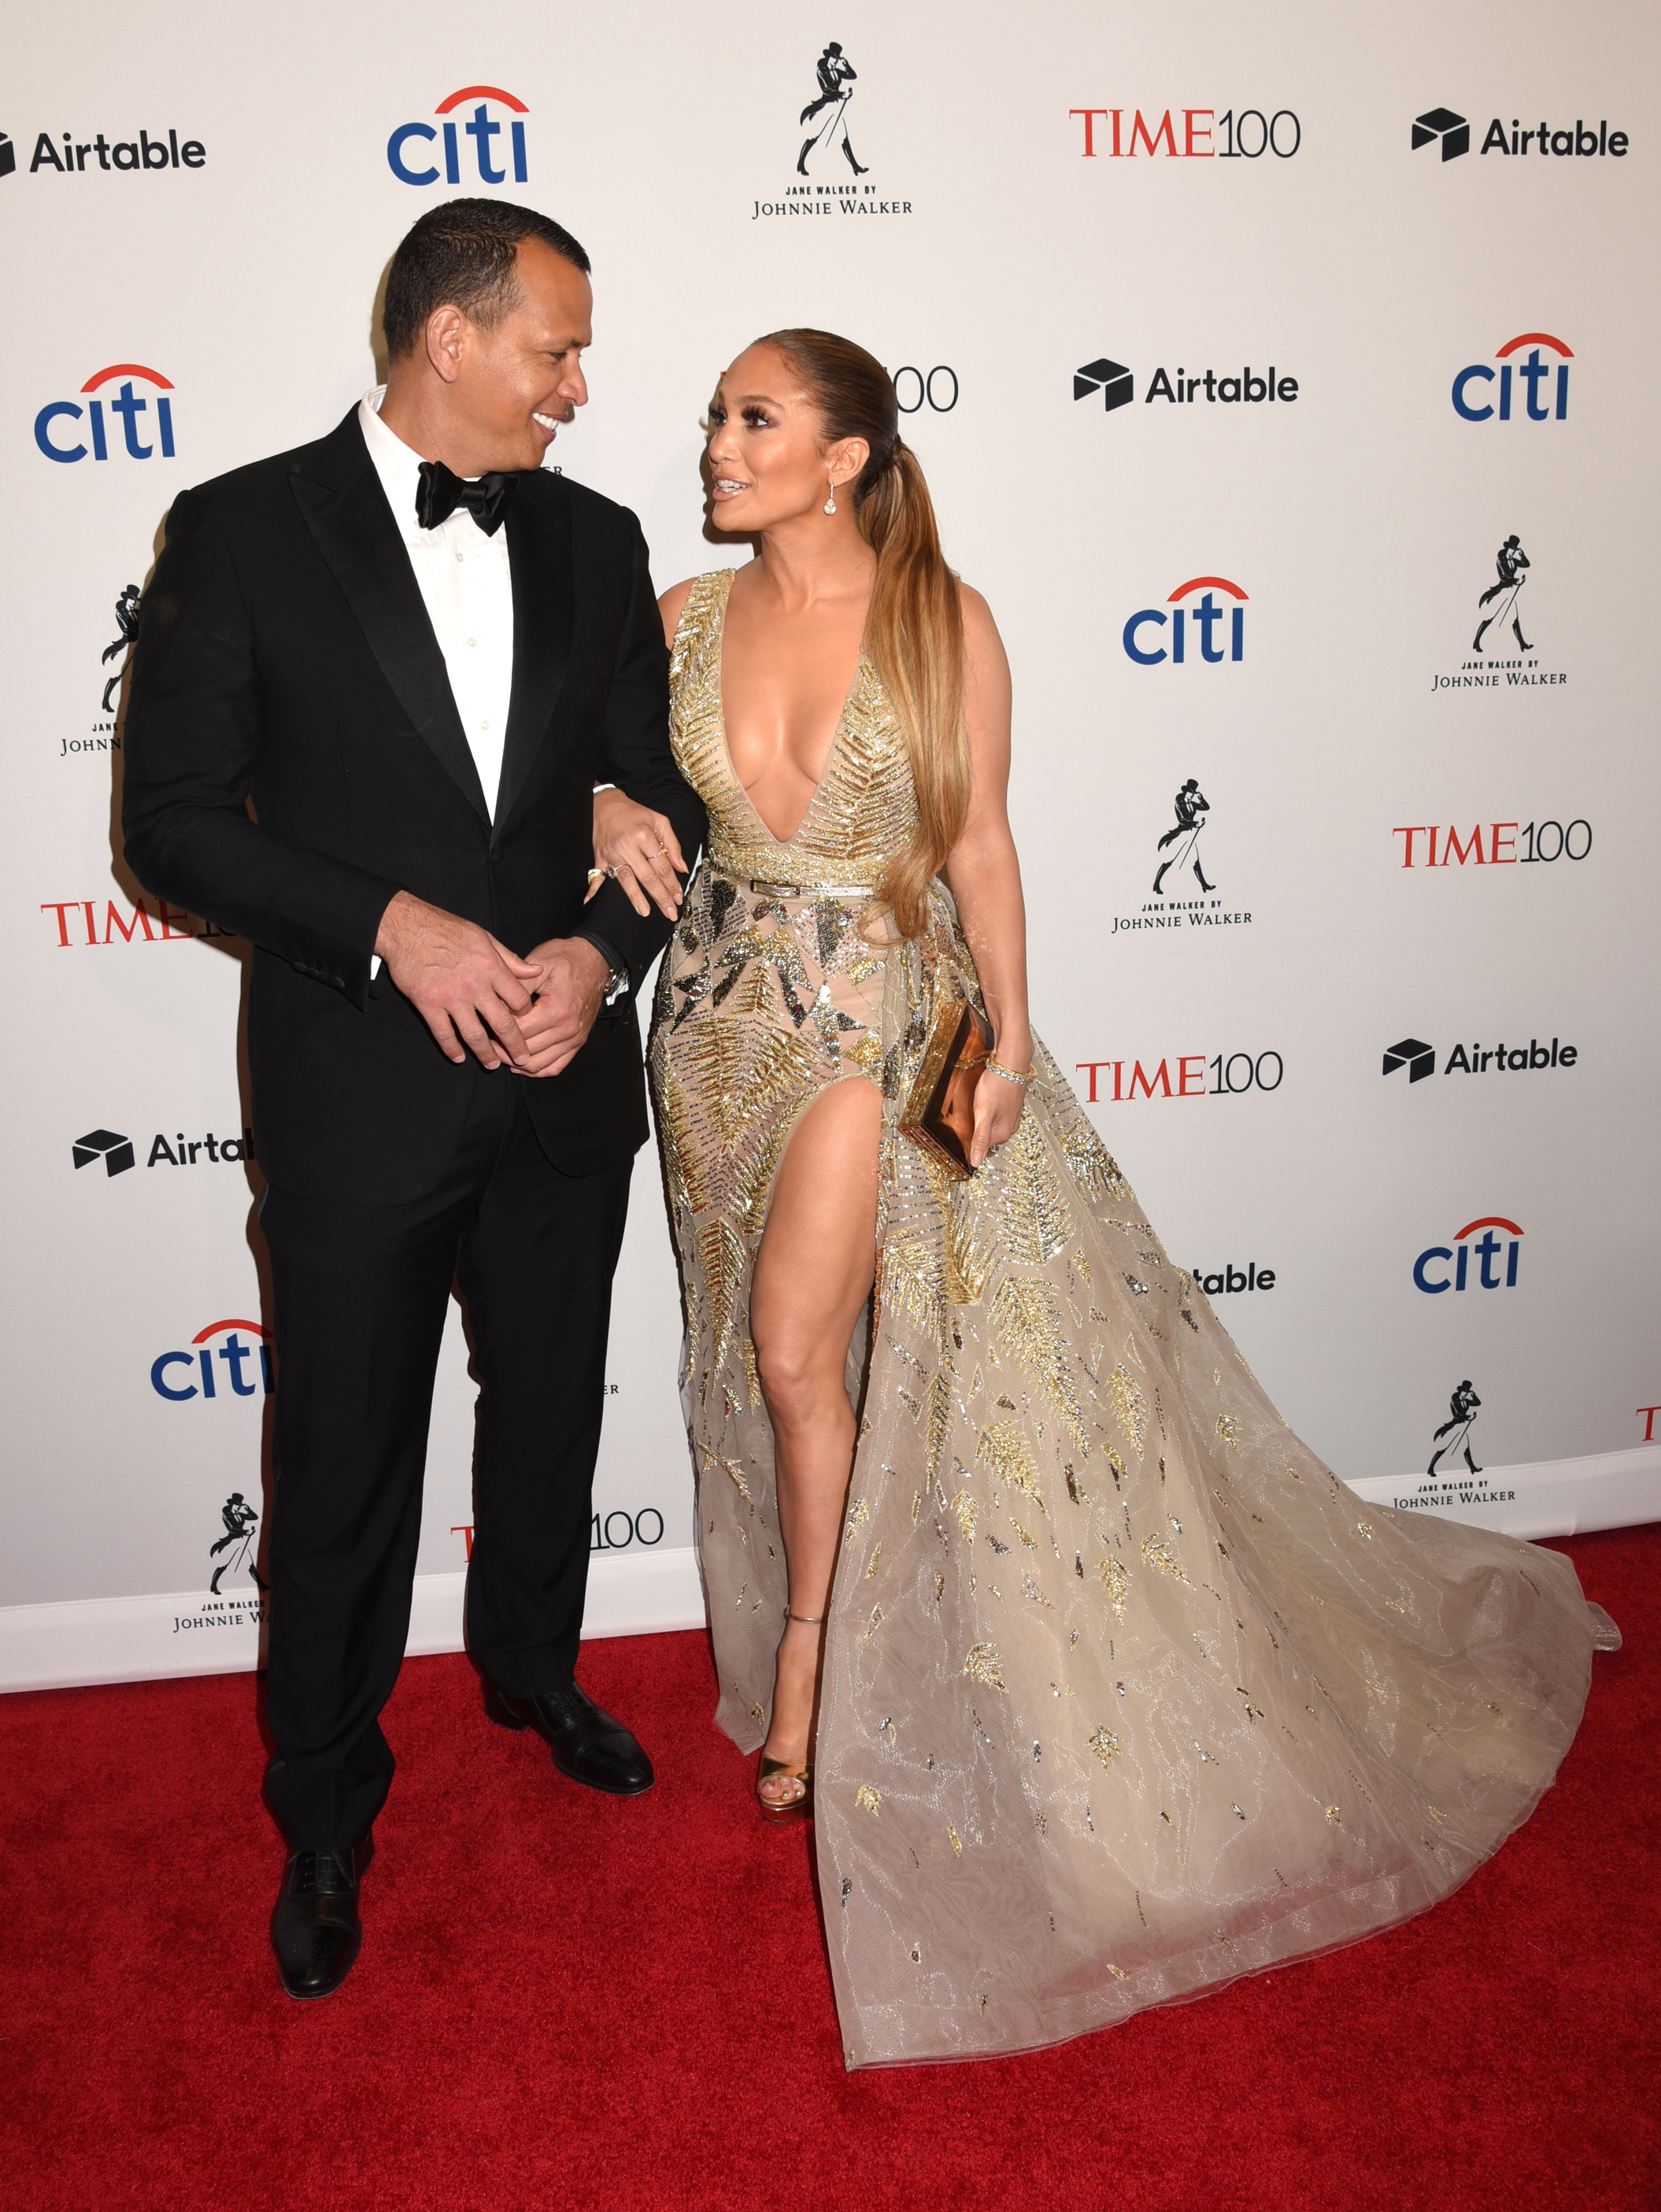 Celebrities attend the 2018 Time 100 Gala. Held @ Frederick P. Rose Hall at Lincoln Center, New York City, NY. April 24, 2018.  © Photo Image Press/Splash News <P> Pictured: Alex Rodriguez, & Jennifer Lopez <B>Ref: SPL1687307  240418  </B><BR/> Picture by: Photo Image Press<BR/> </P><P> <B>Splash News and Pictures</B><BR/> Los Angeles:310-821-2666<BR/> New York:212-619-2666<BR/> London:870-934-2666<BR/> <span id=